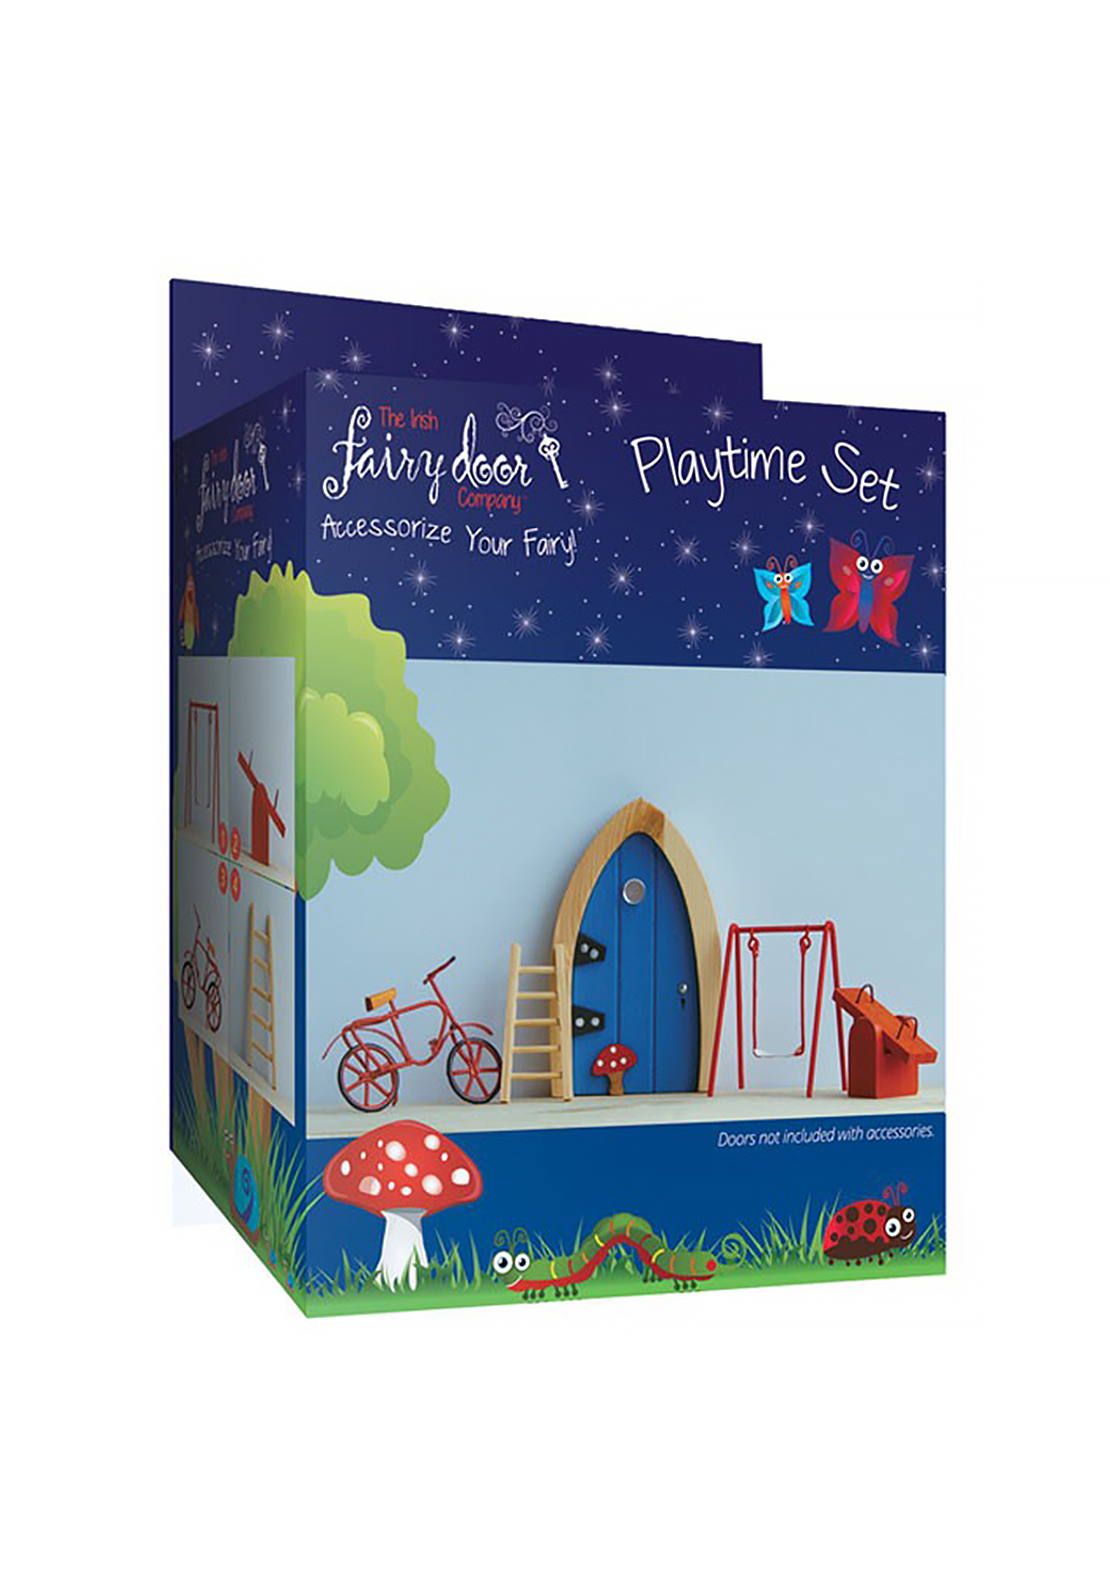 The Irish Fairy Door Company Playtime Accessory Set